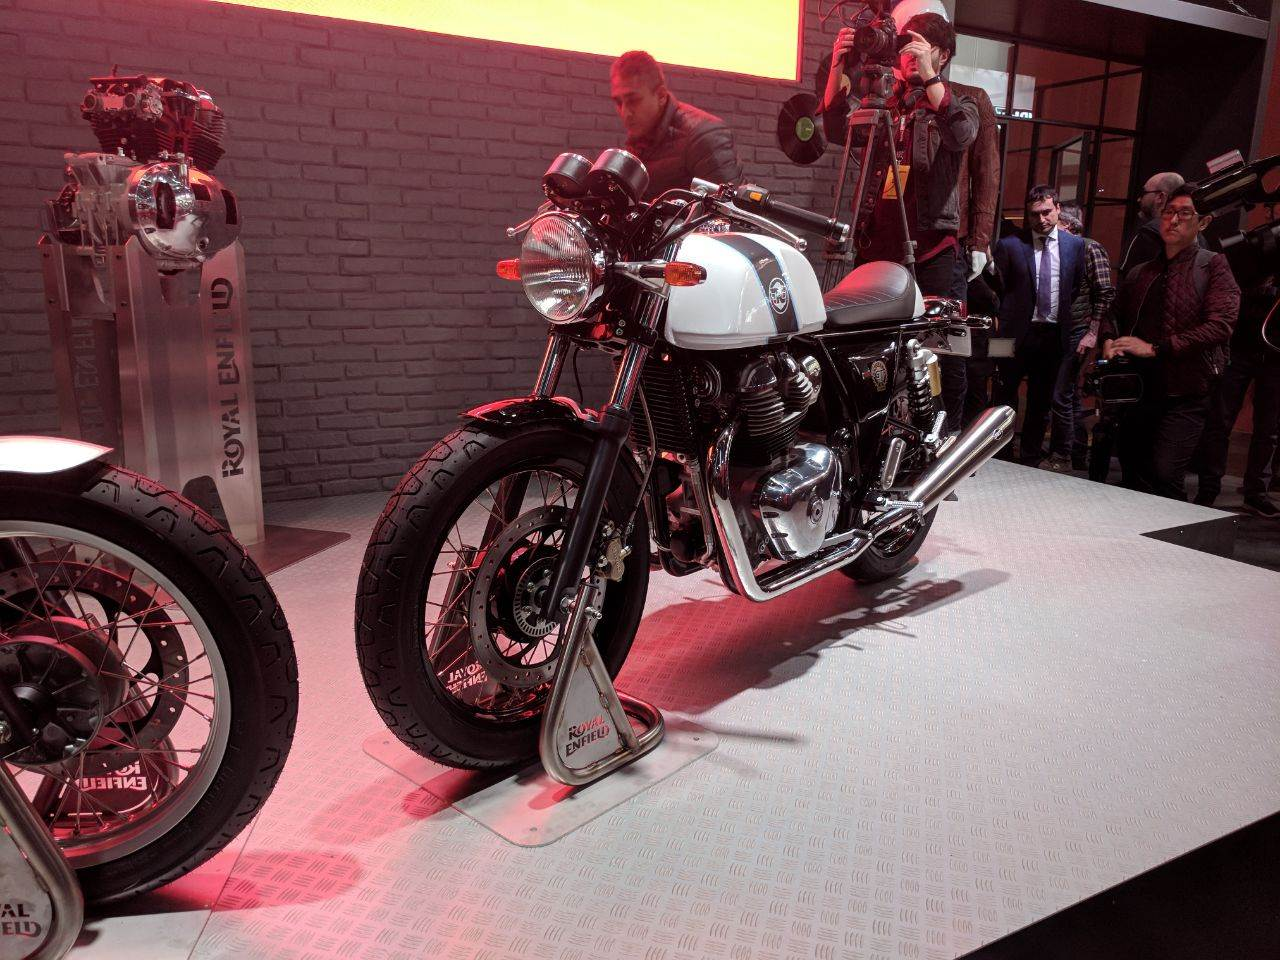 2017 Royal Enfield Interceptor, Continental GT Twin image gallery